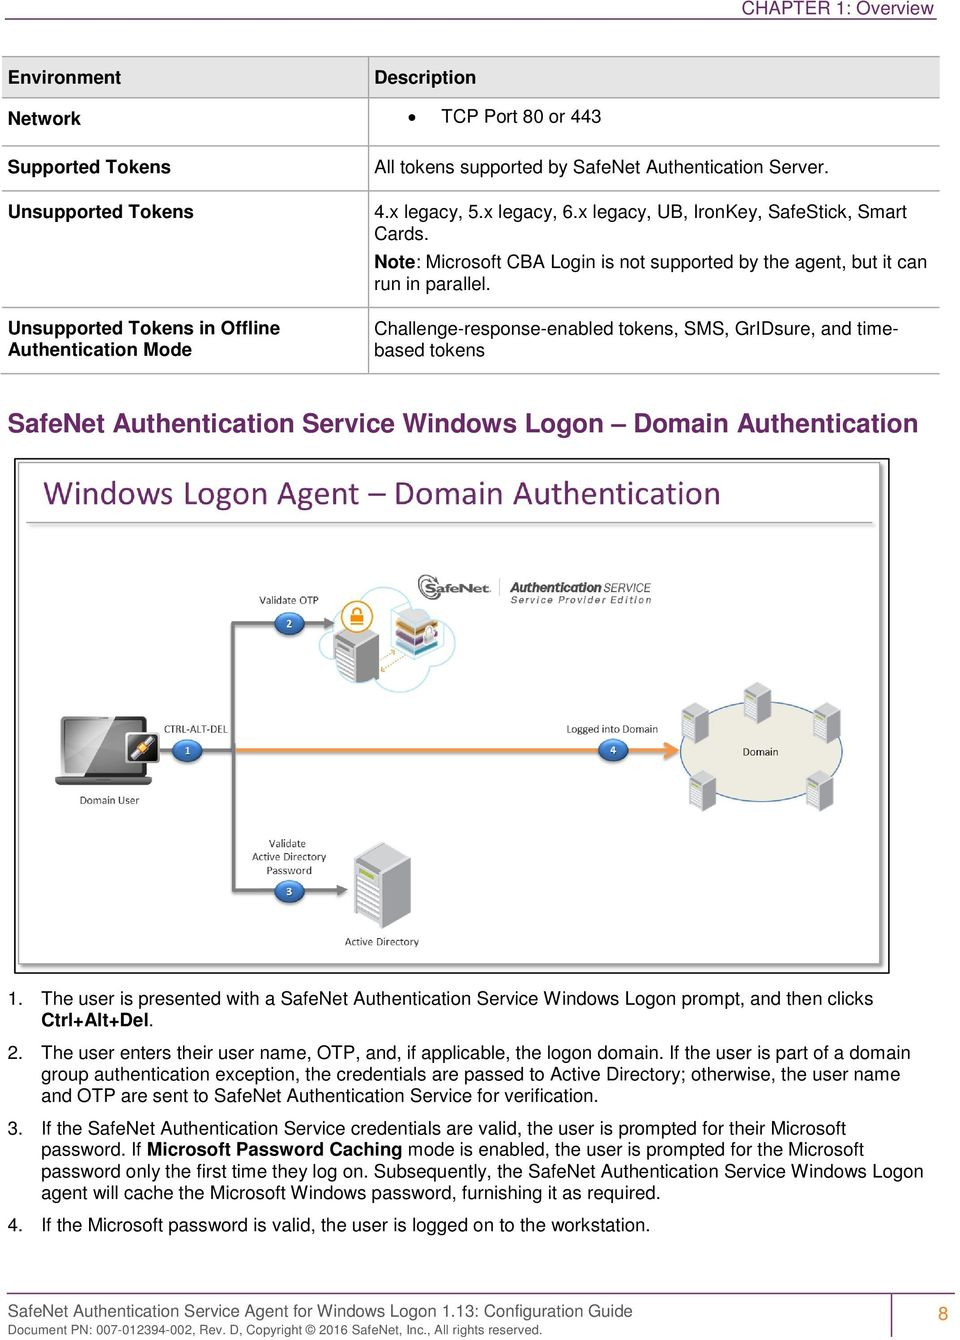 SafeNet Authentication Service Agent for Windows Logon